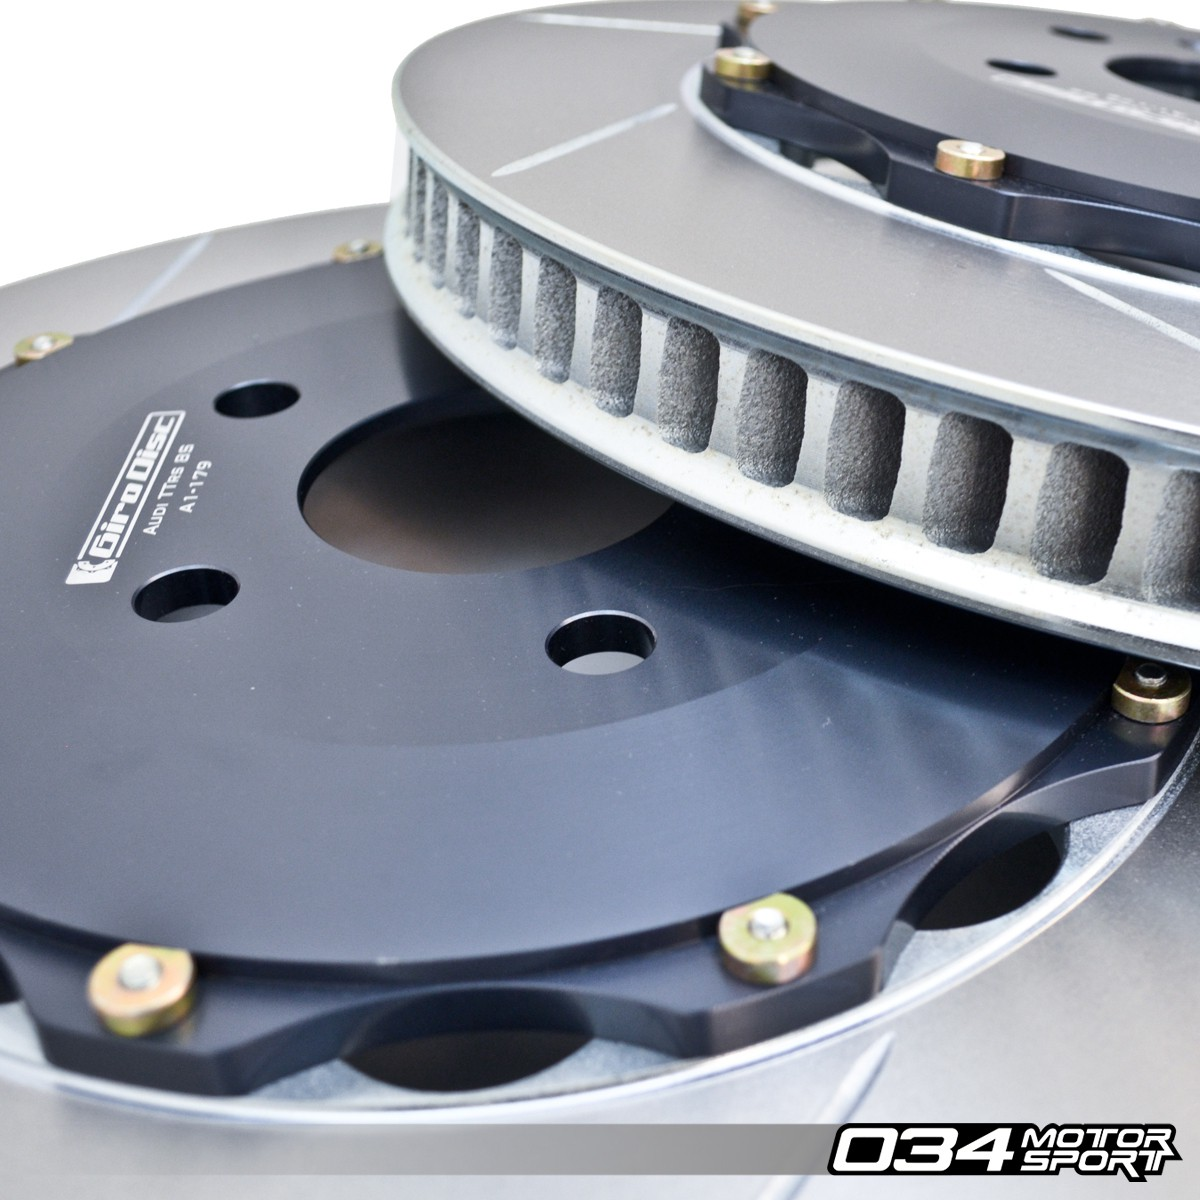 GiroDisc Front 2-Piece Floating Rotor Pair for 8S Audi TTRS (MkIII) | GIR-A1-179